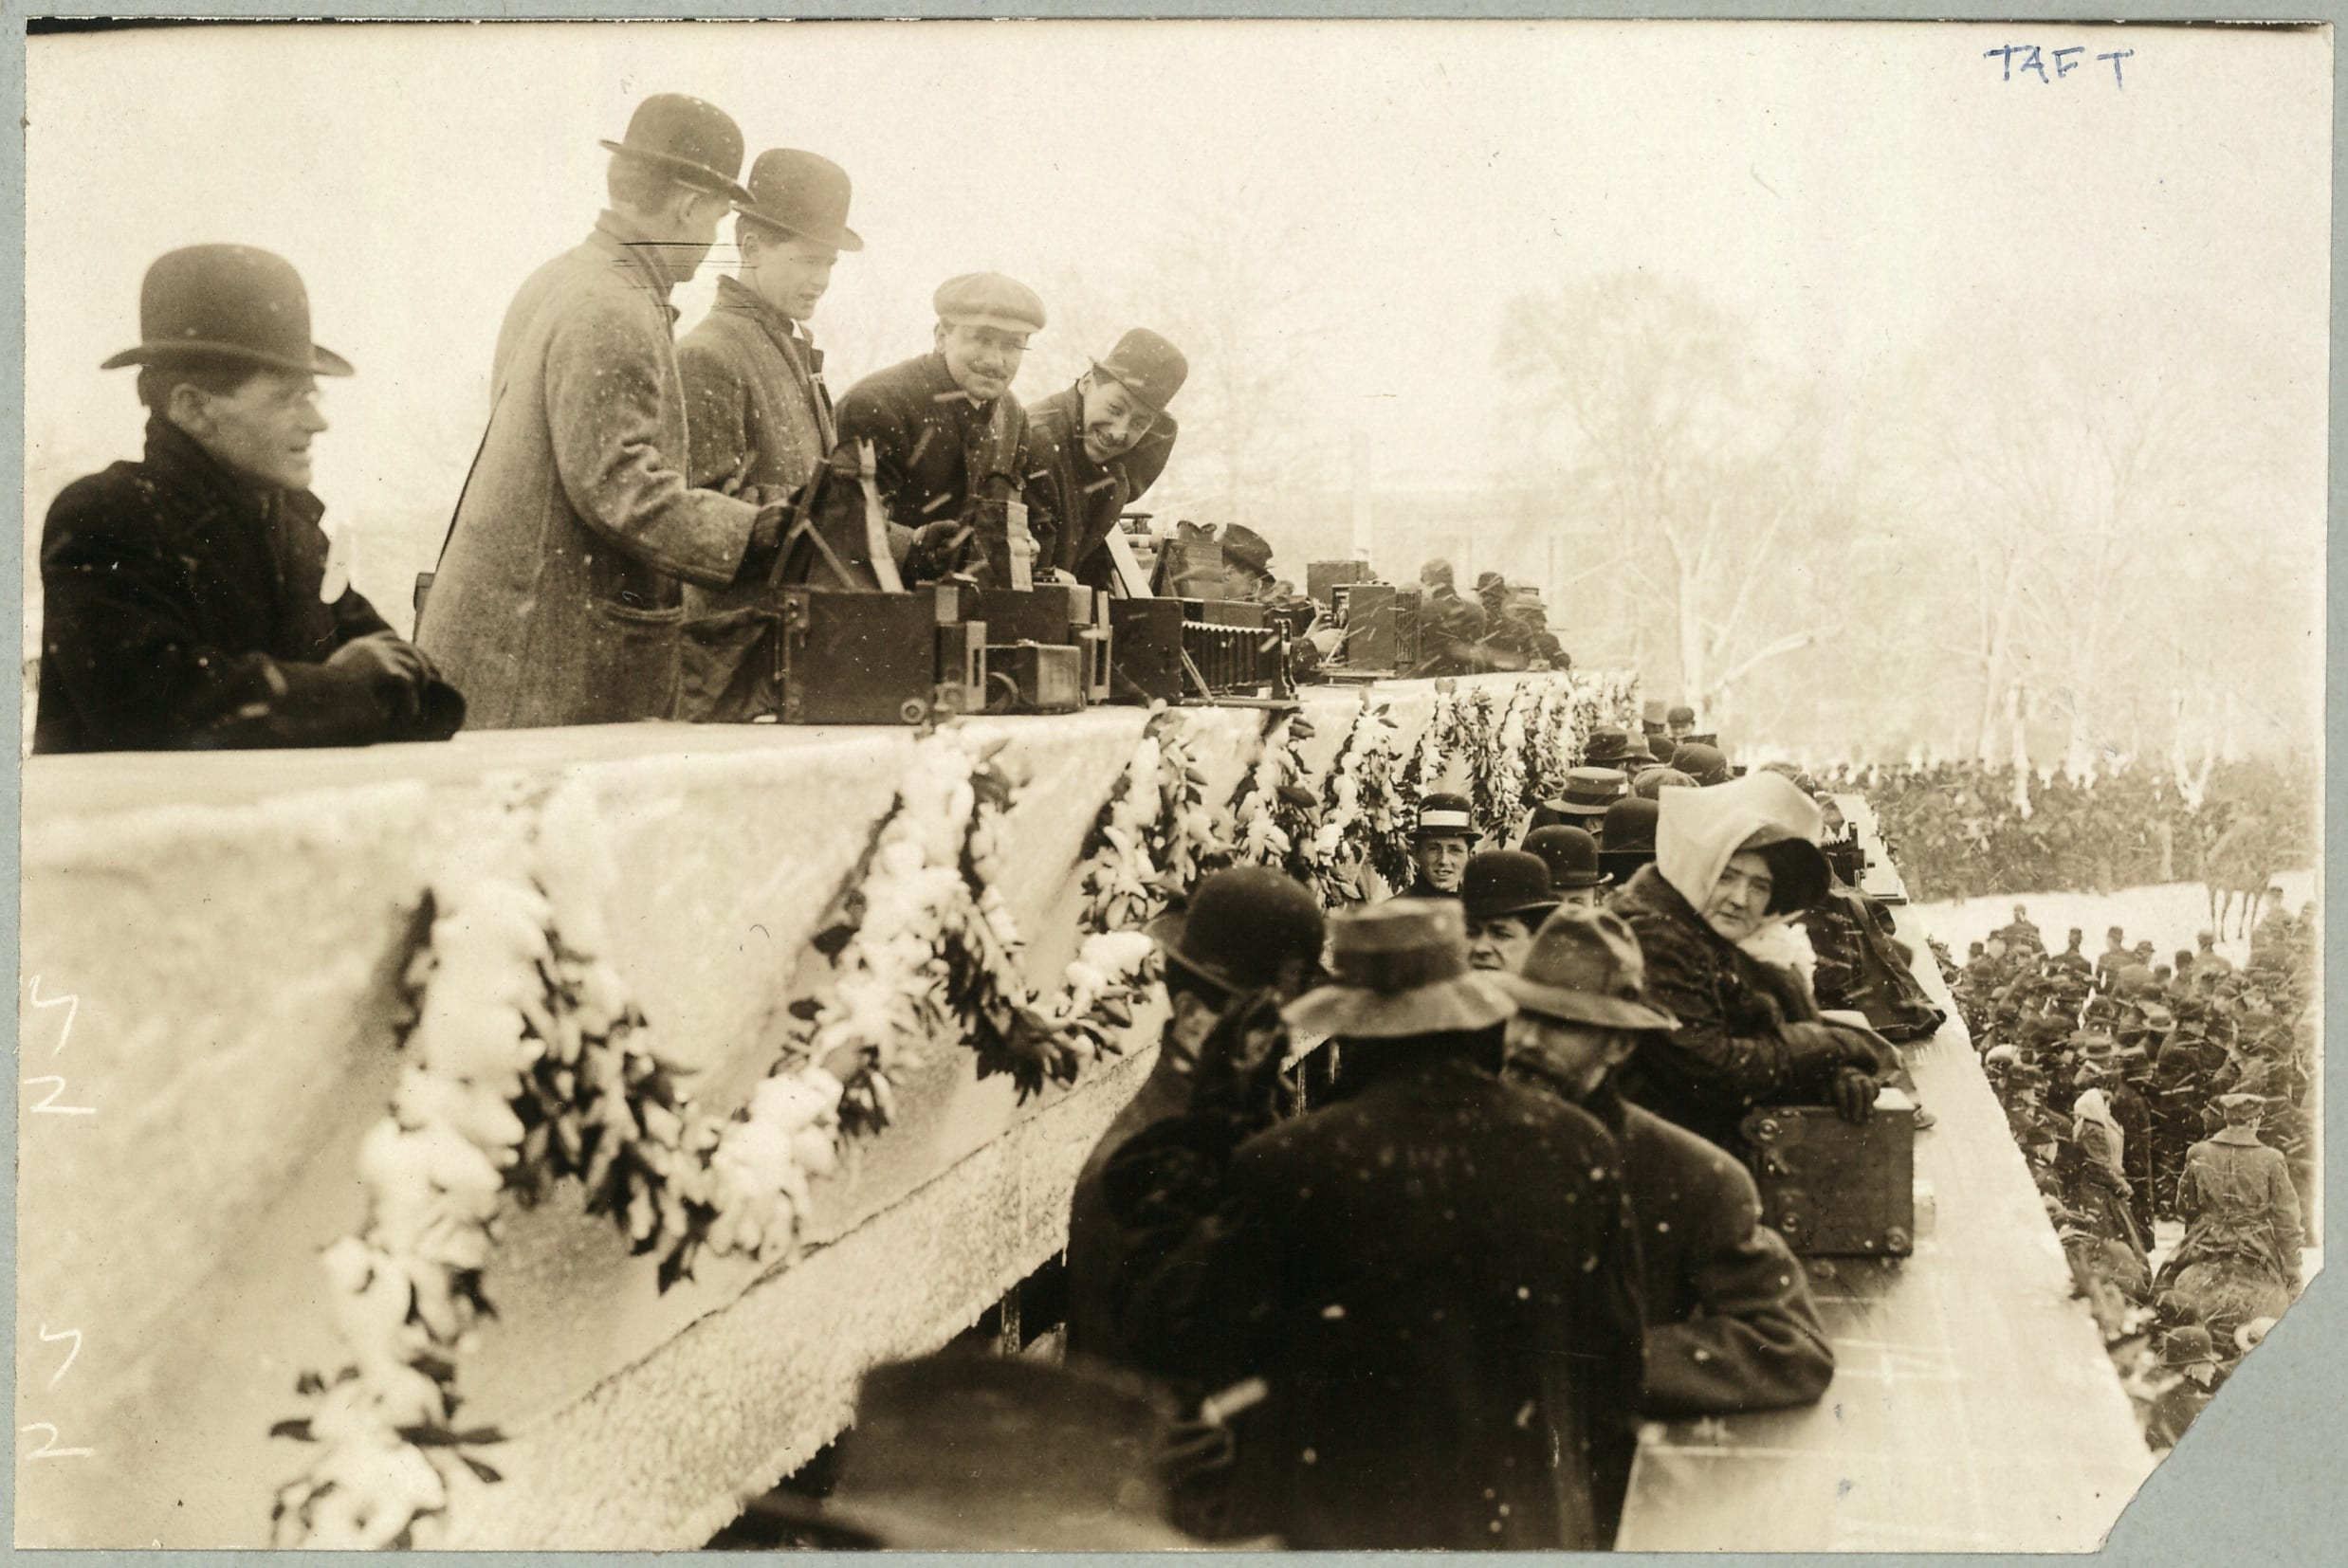 Photographers at President Taft's inauguration, March 4, 1909